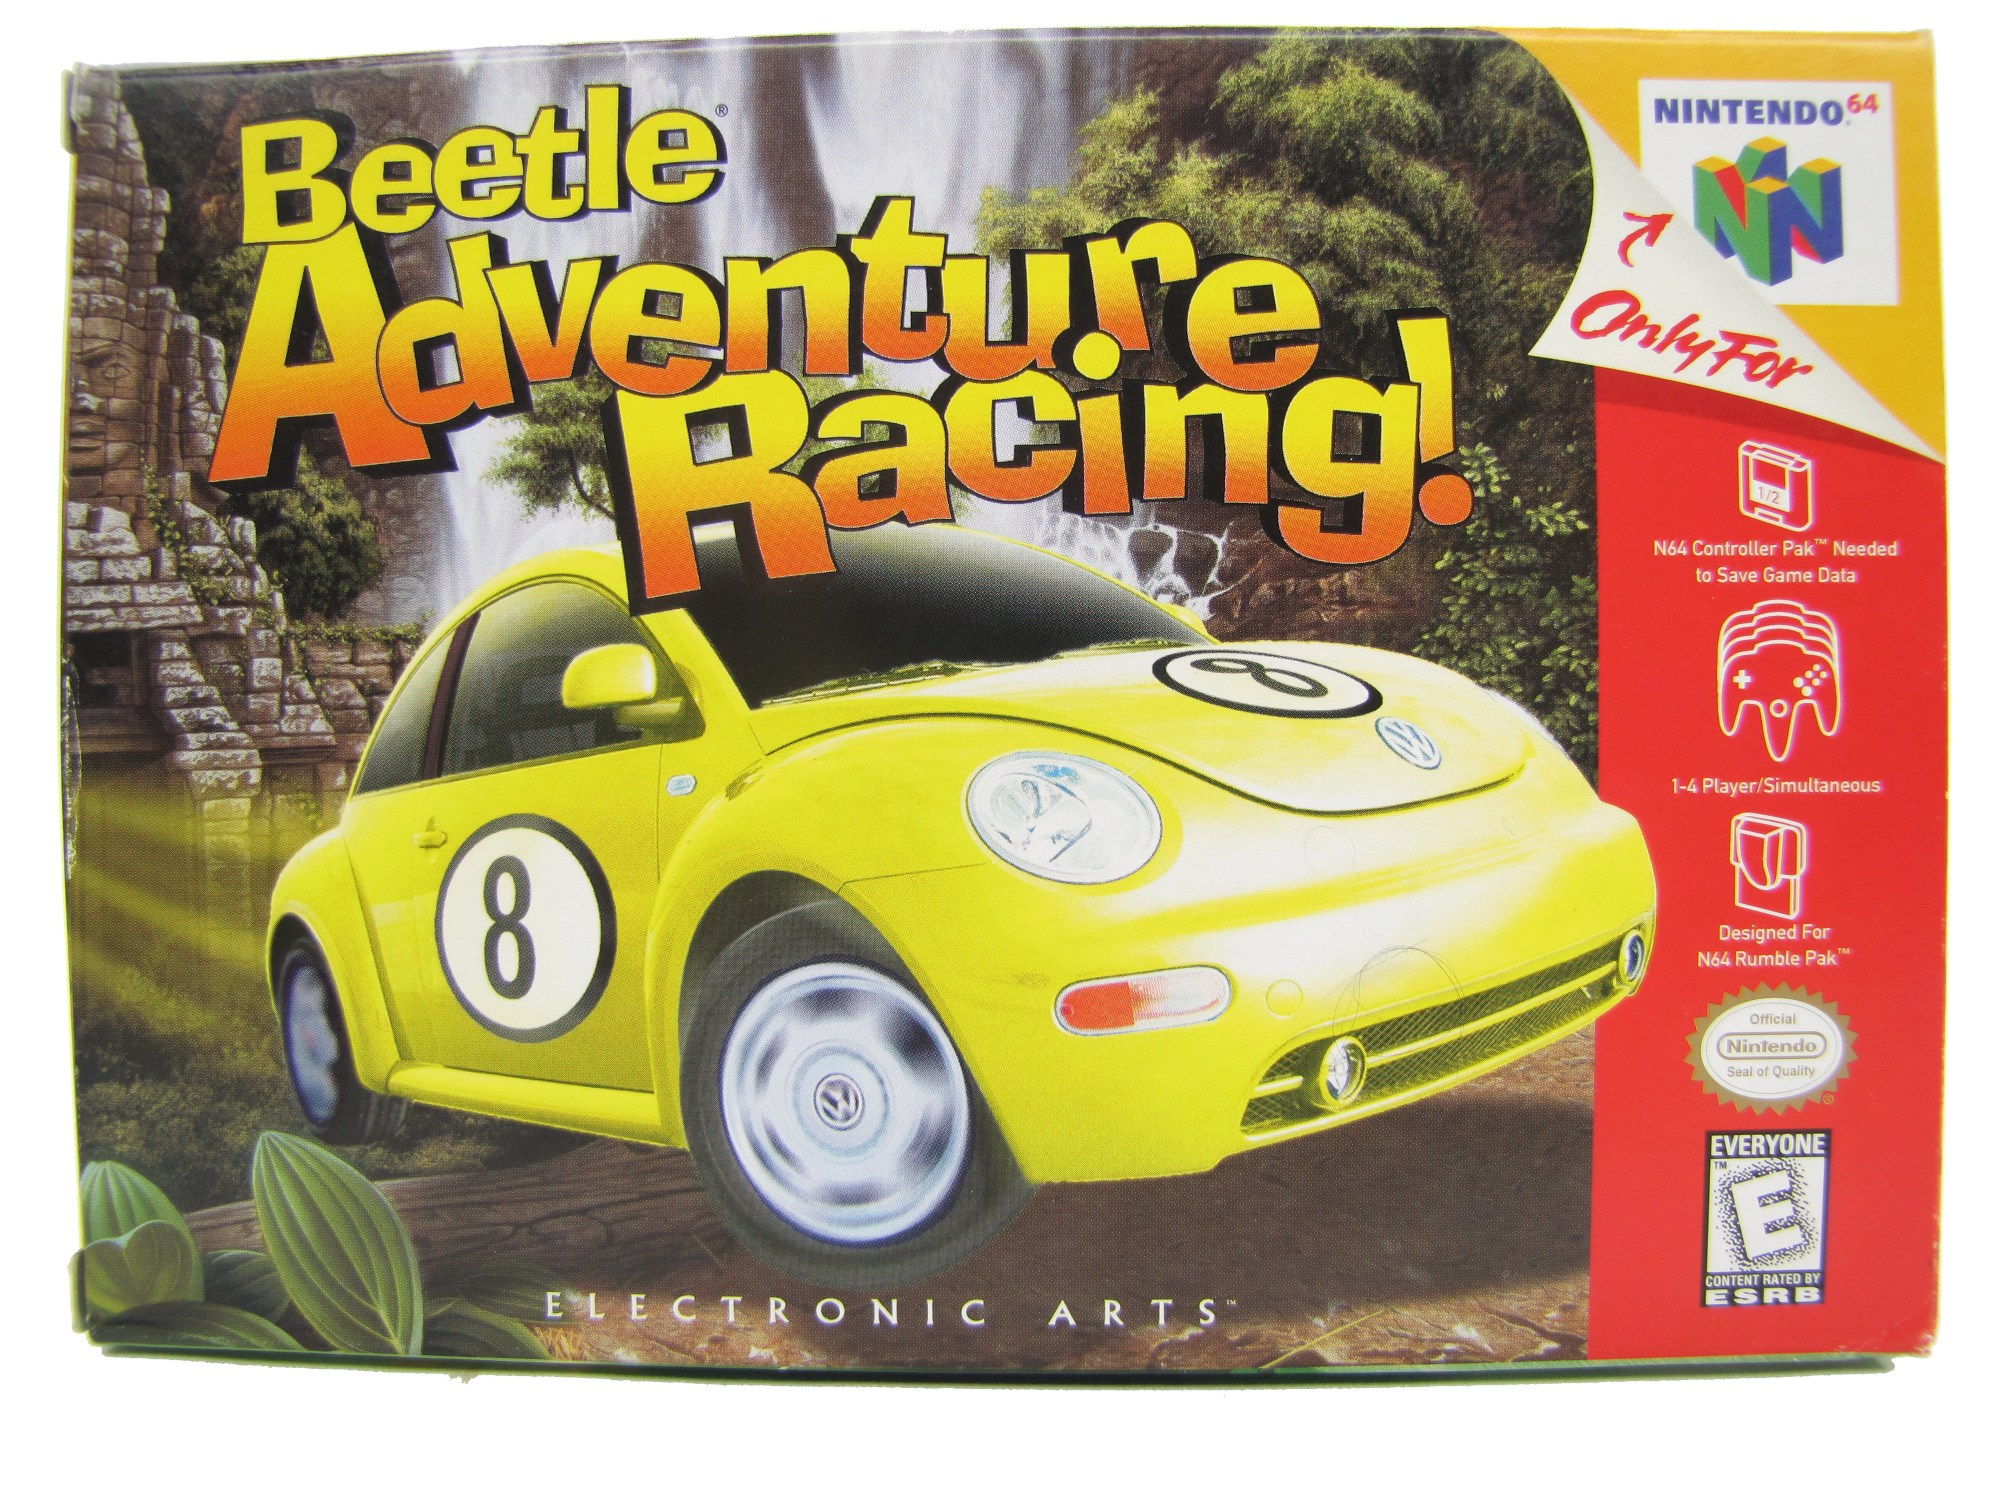 hight resolution of n64 beetle adventure racing complete in box 1999